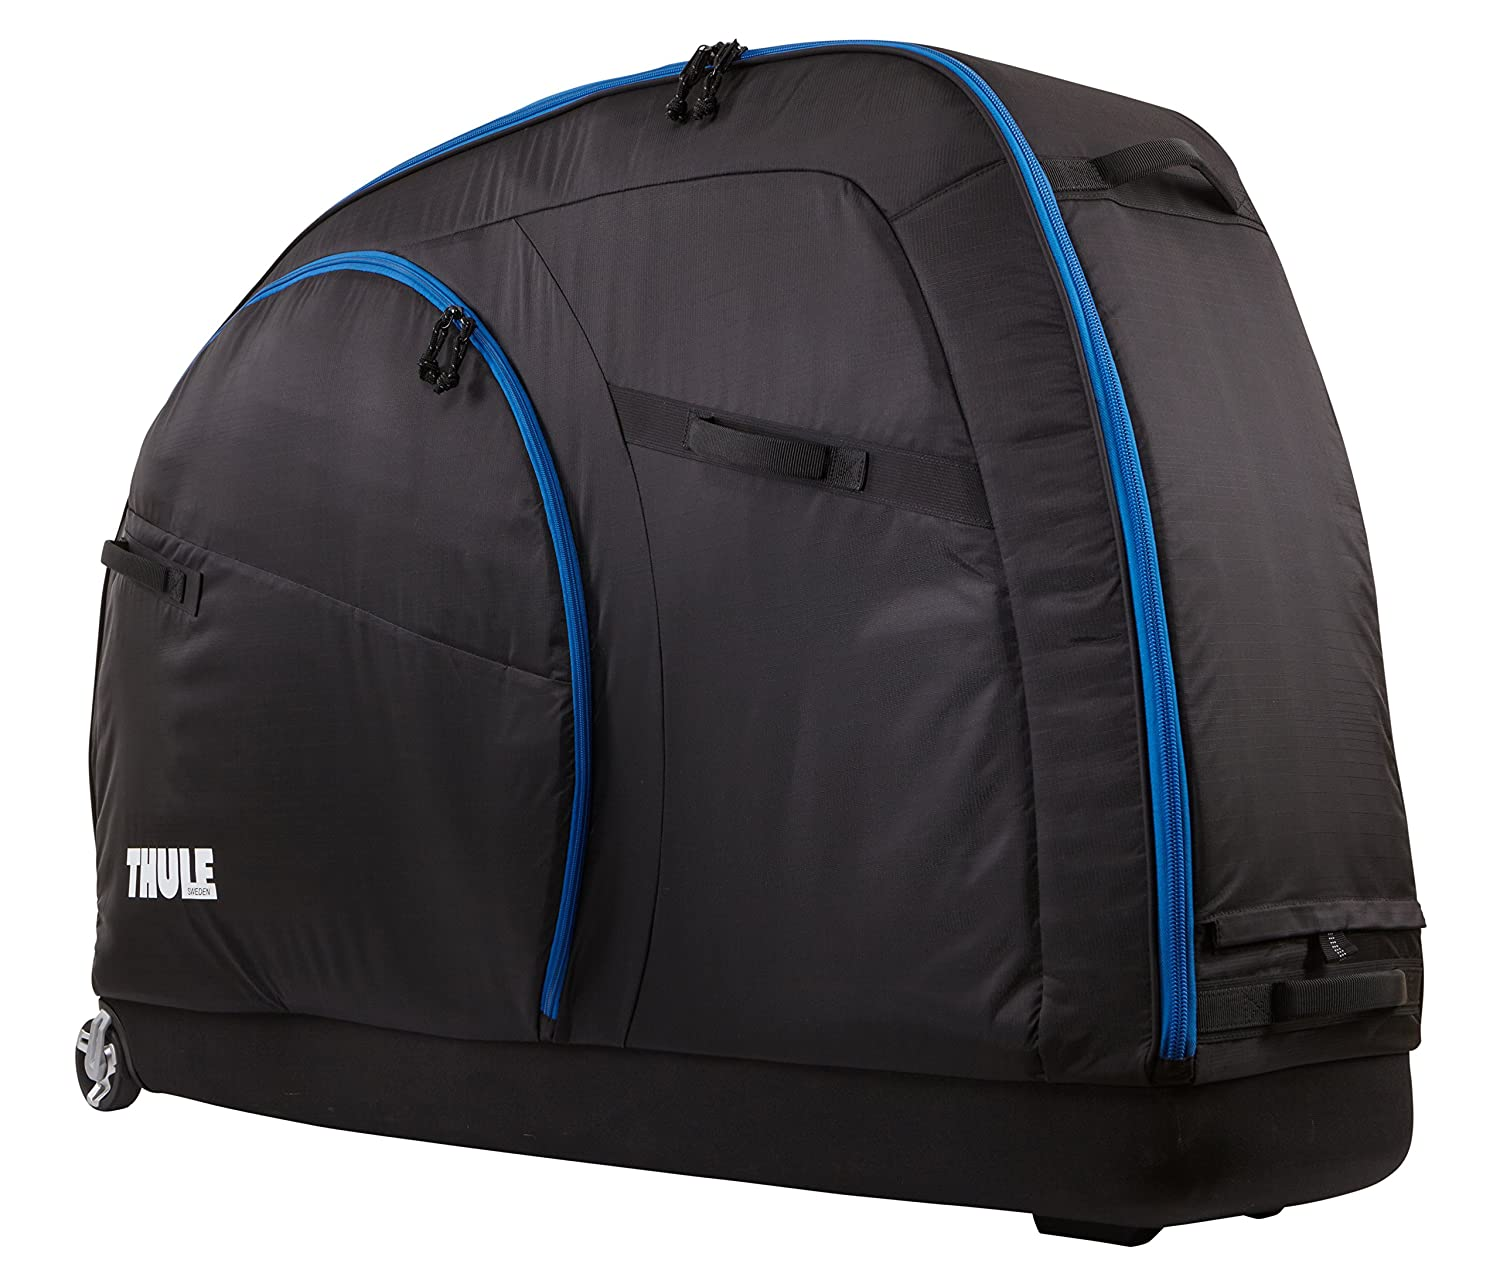 eef6721880 Amazon.com  Thule Round Trip Traveler Bike Case  Sports   Outdoors